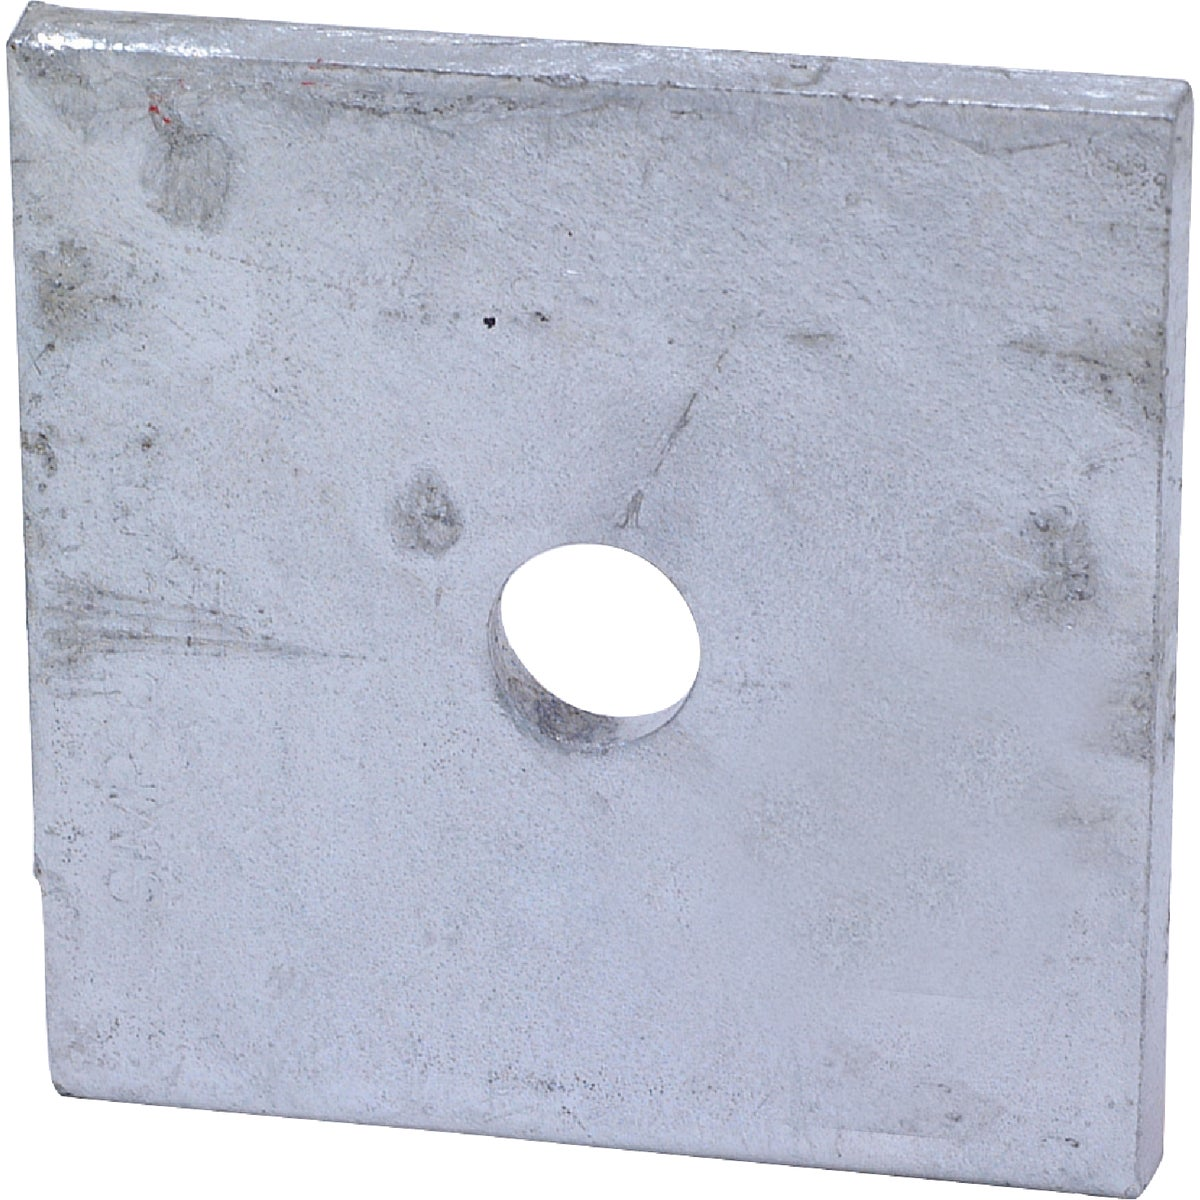 Simpson Strong-Tie 1/2-3 BEARING PLATE BP 1/2-3